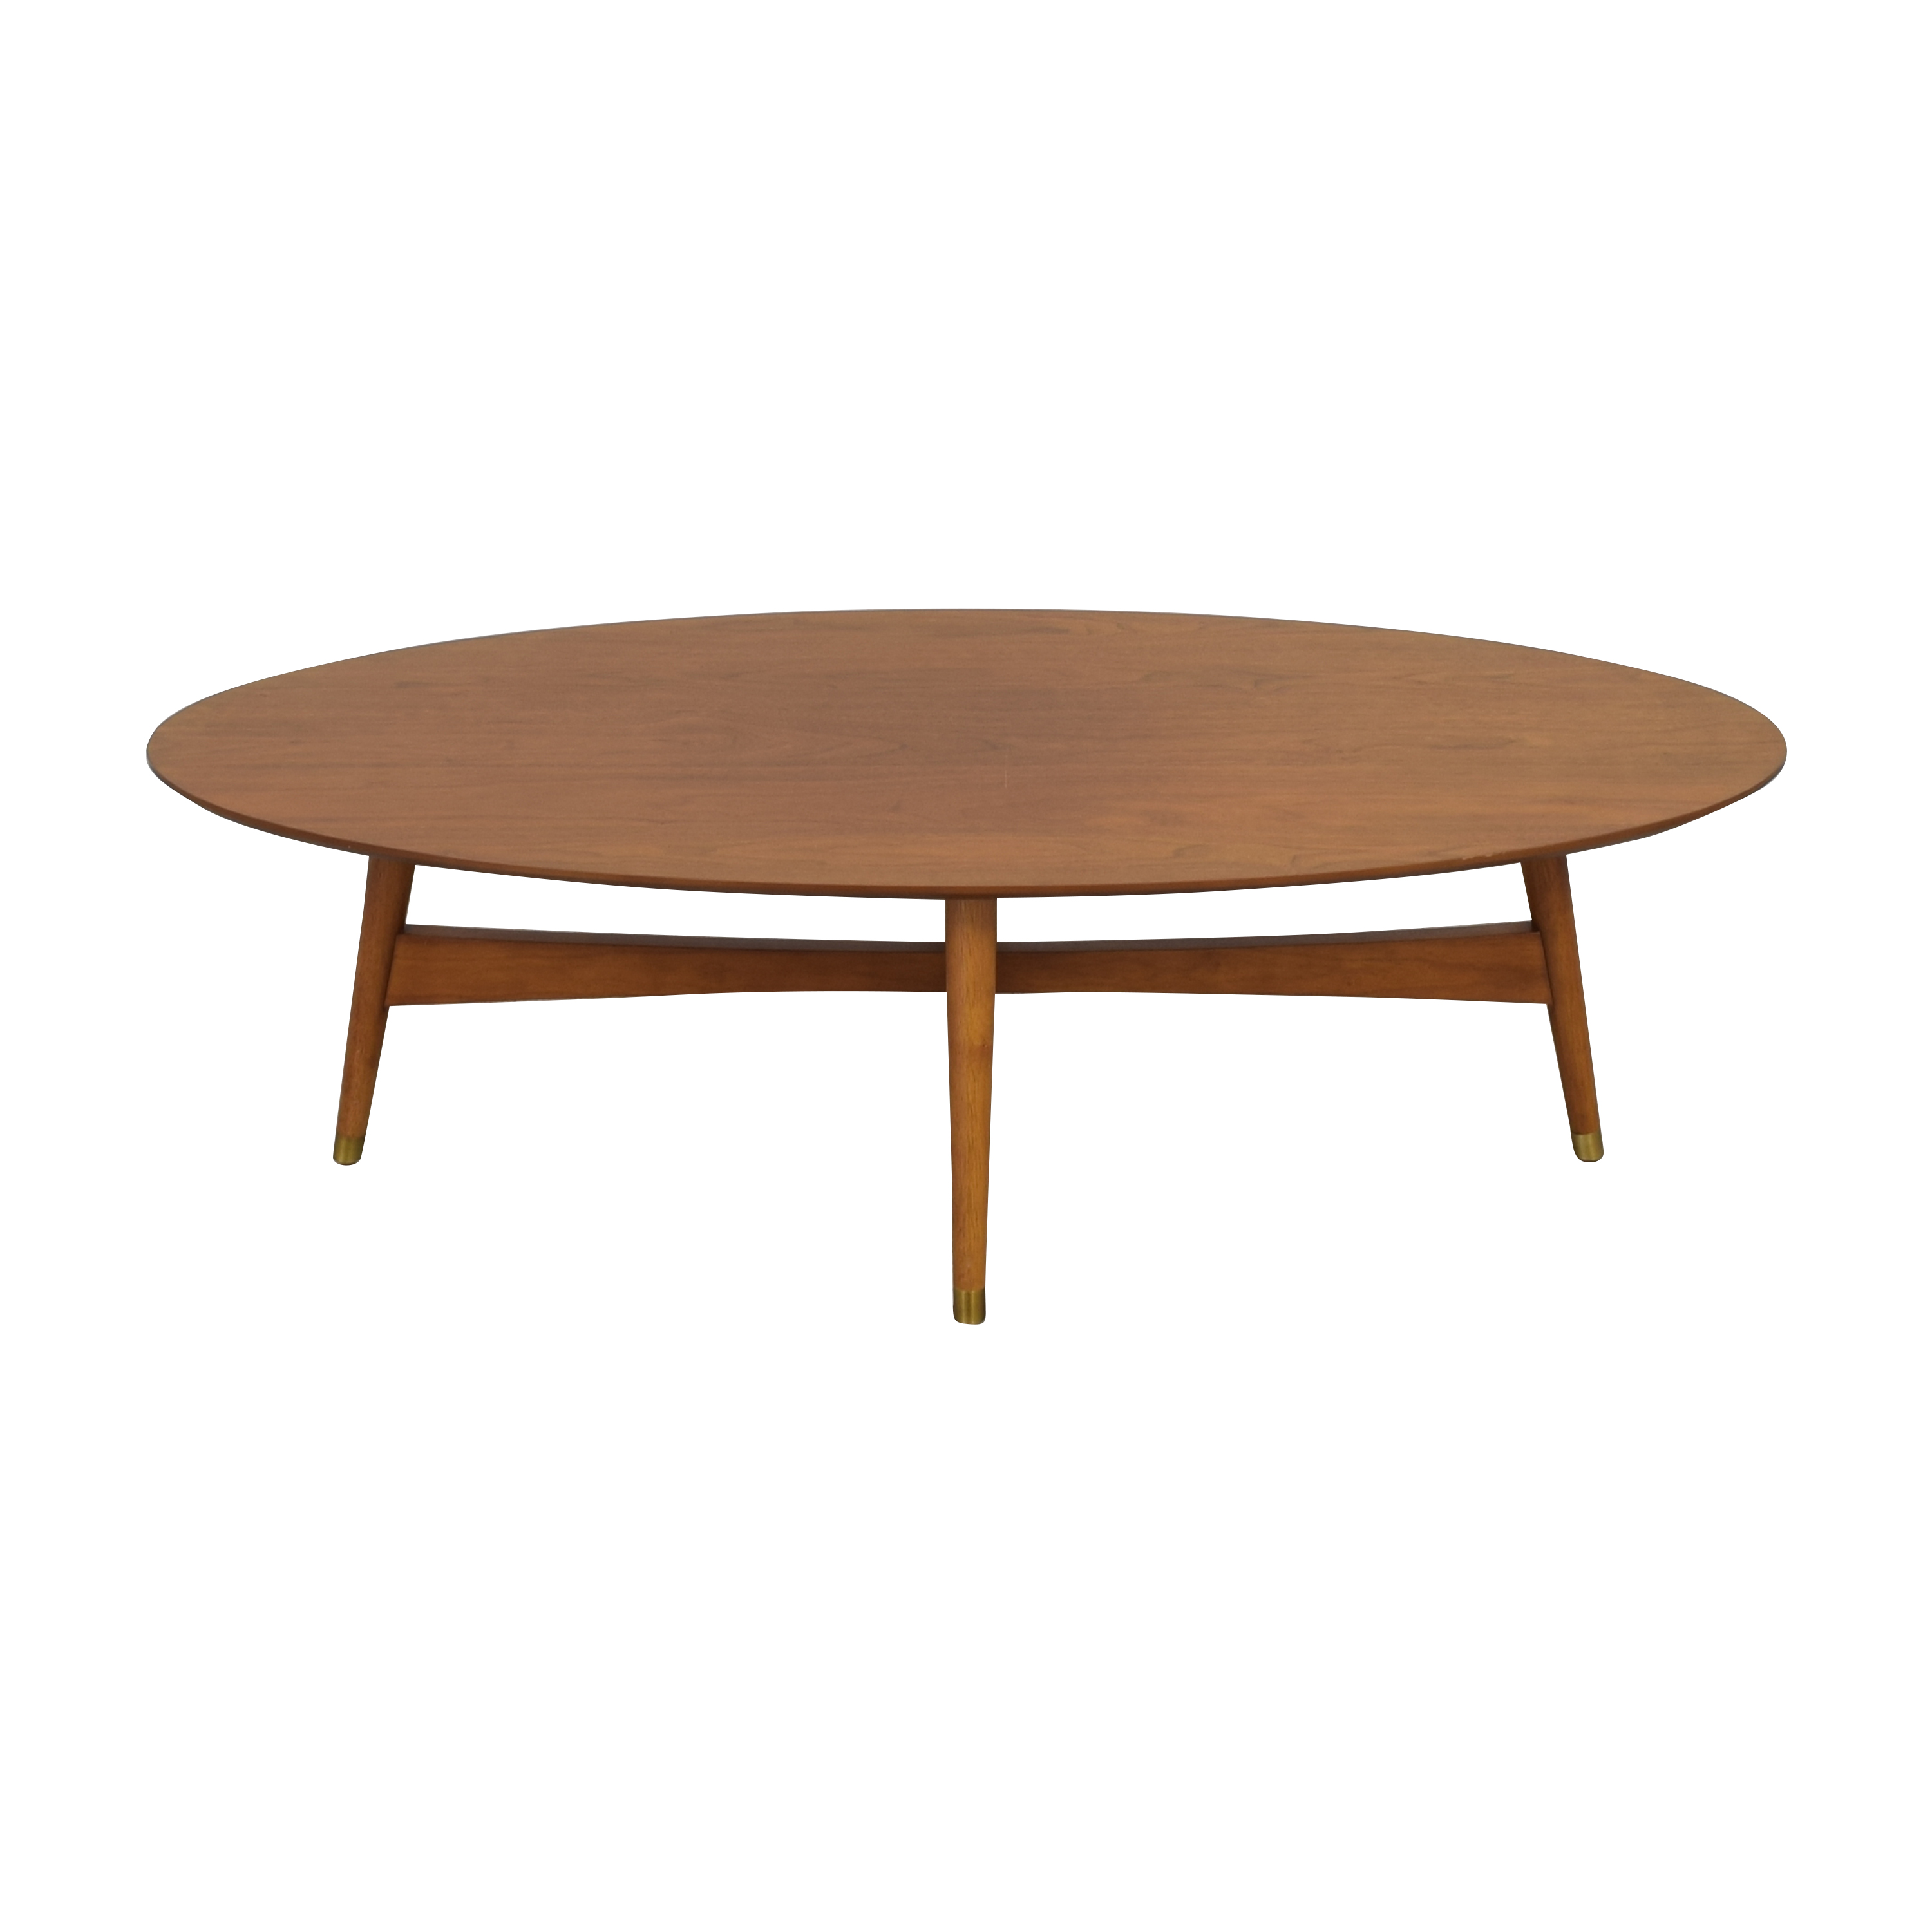 25 off west elm west elm reeve mid century oval coffee table tables